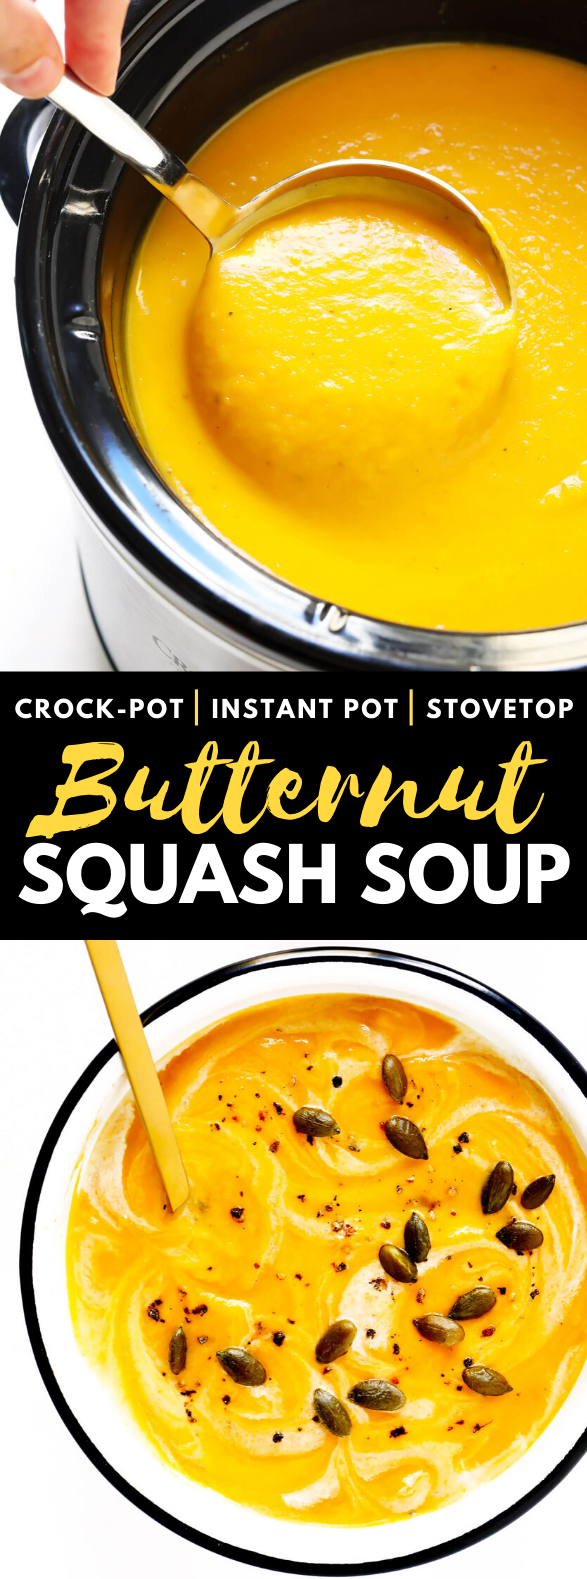 BUTTERNUT SQUASH SOUP #vegetarian #glutenfree